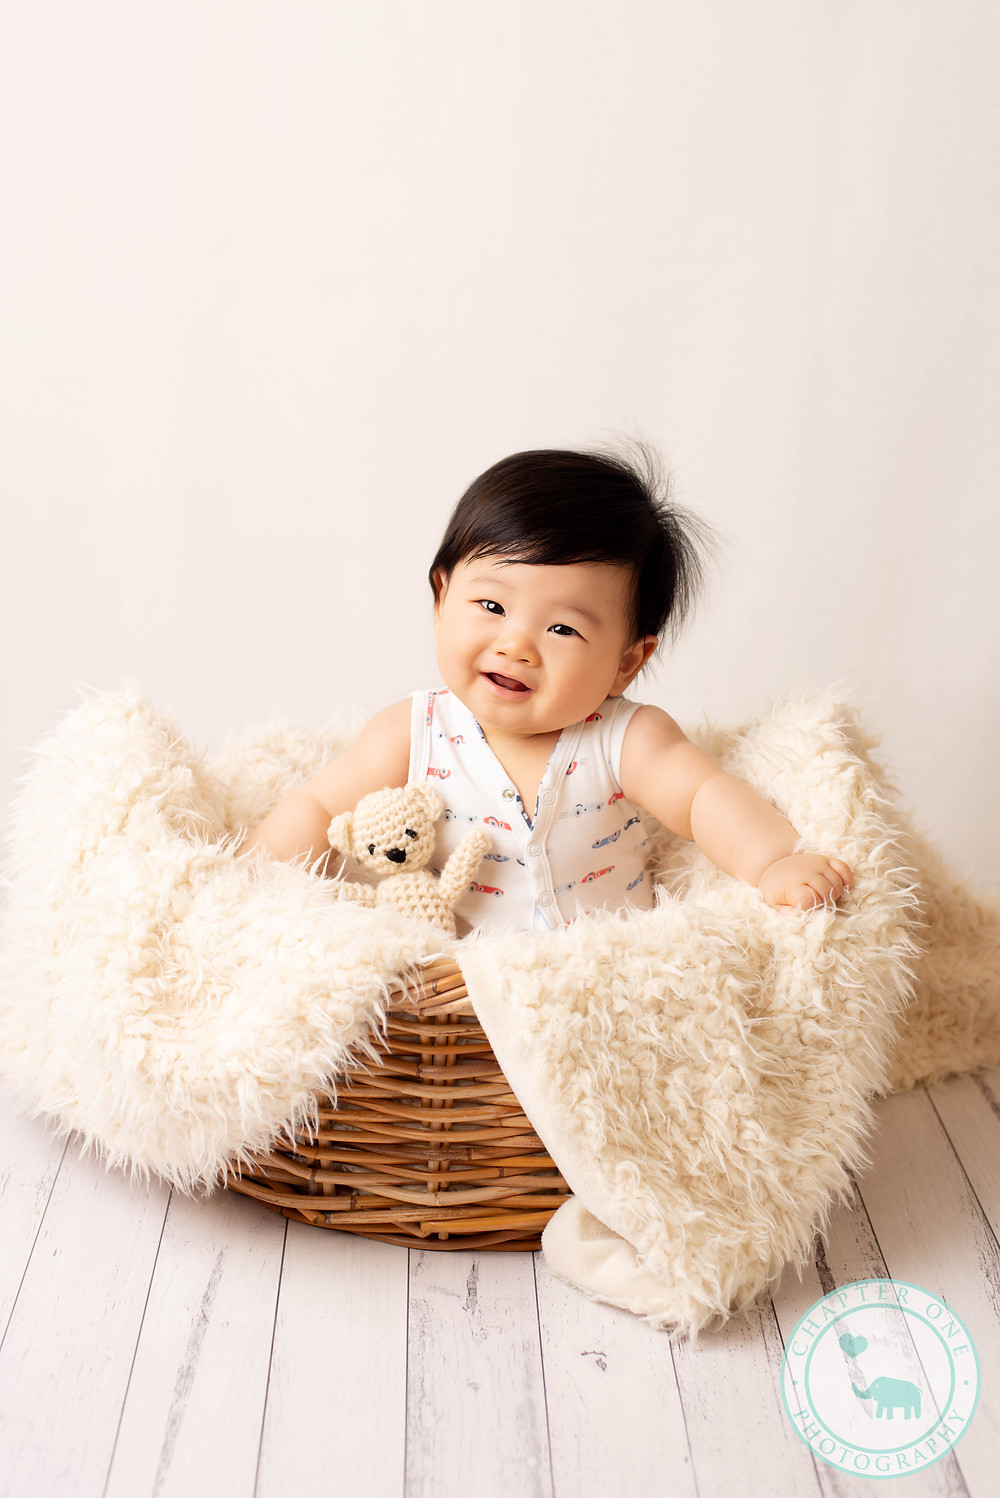 6 month old baby basket photos